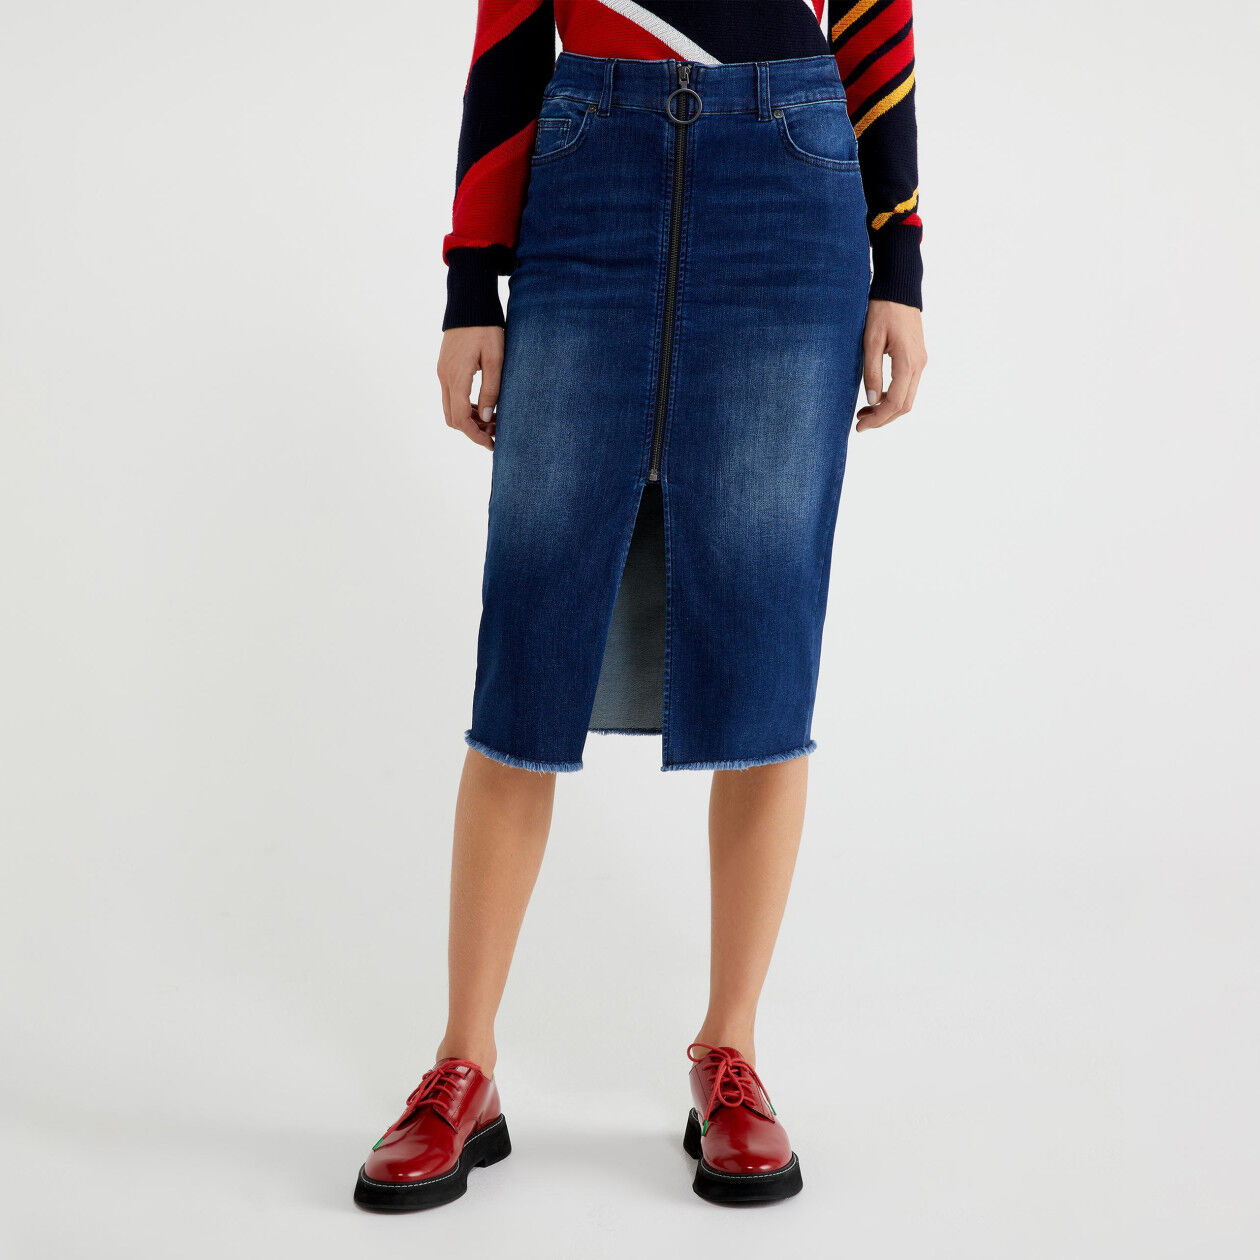 Denim skirt with zip and slit